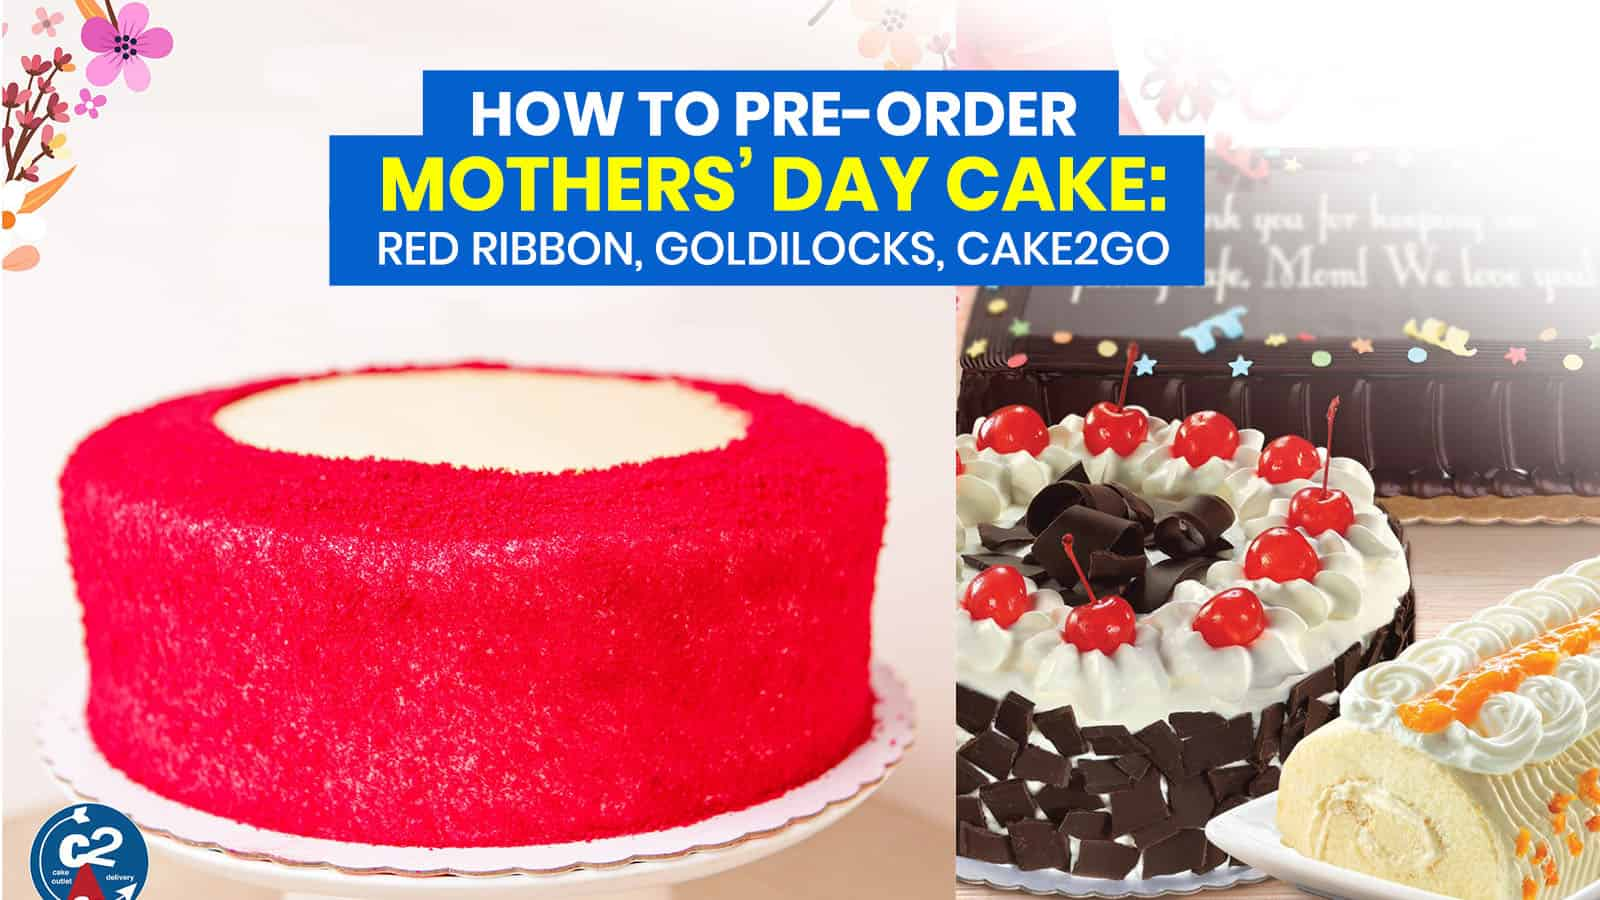 How to Pre-Order MOTHERS' DAY CAKE: Red Ribbon, Goldilocks, Cake2Go